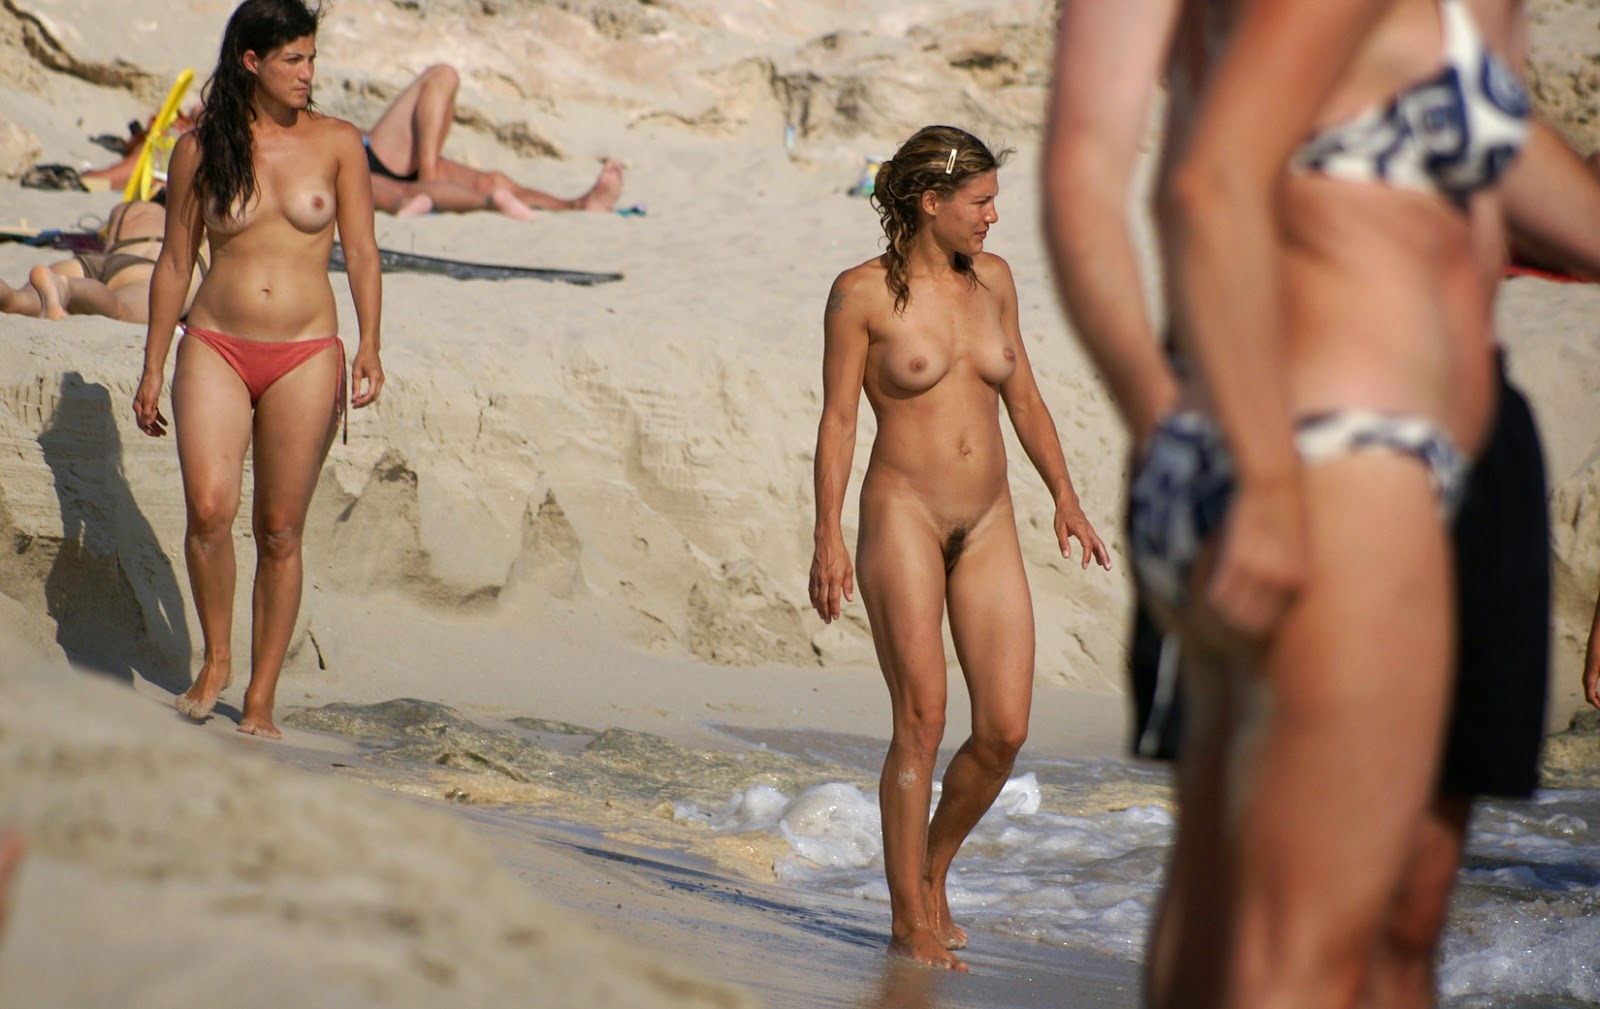 Removed The only girl naked at the beach